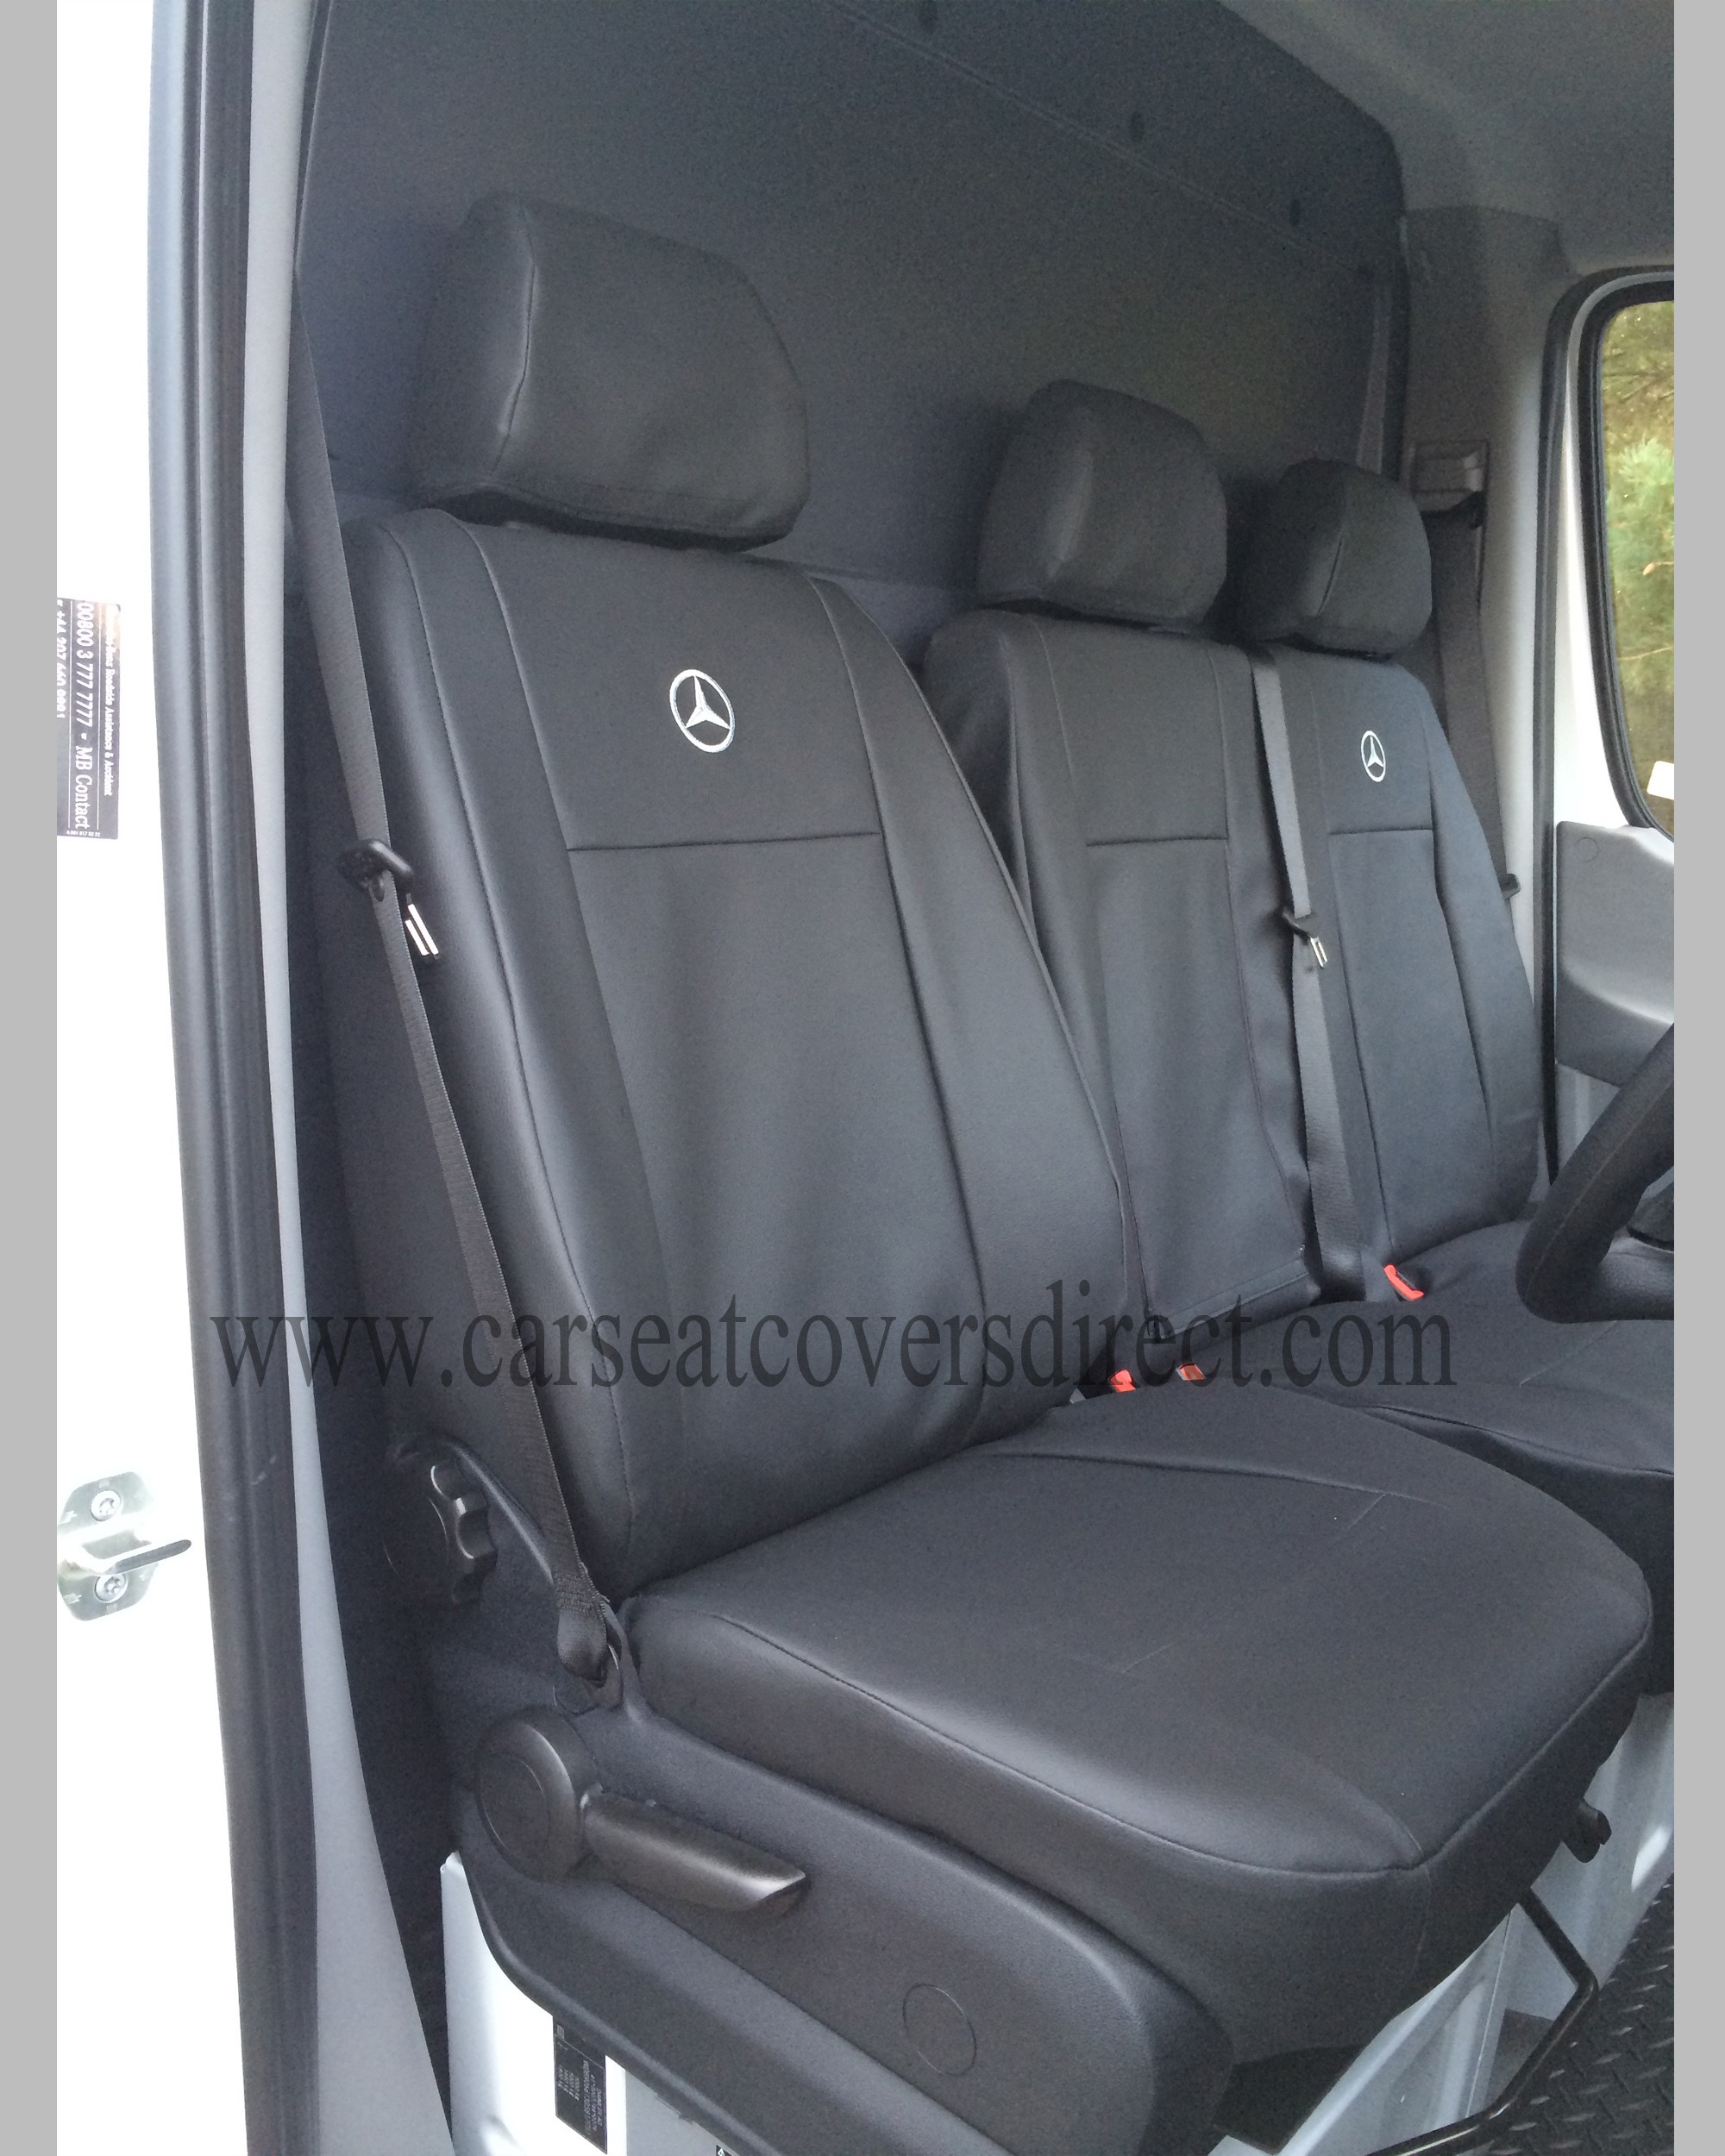 Drivers seat with seat cover